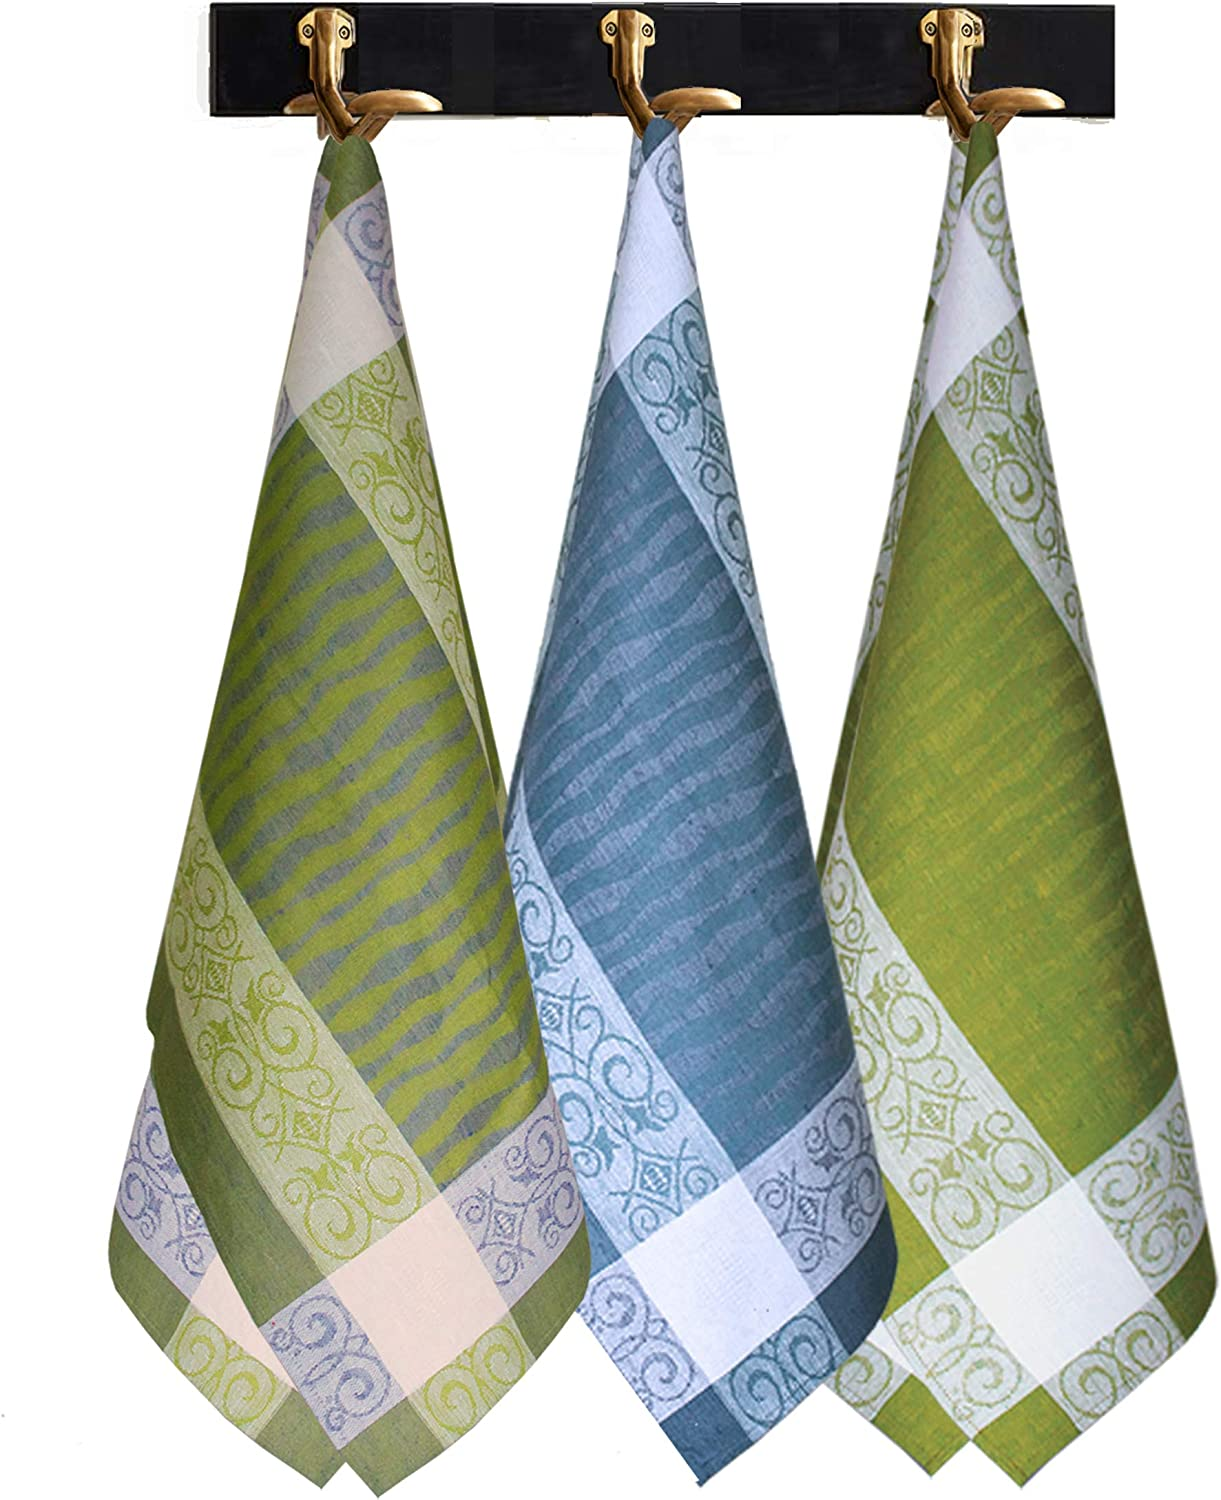 Armani International Manifica Tea Towels Set - 3 in of Crafted Very popular Max 68% OFF